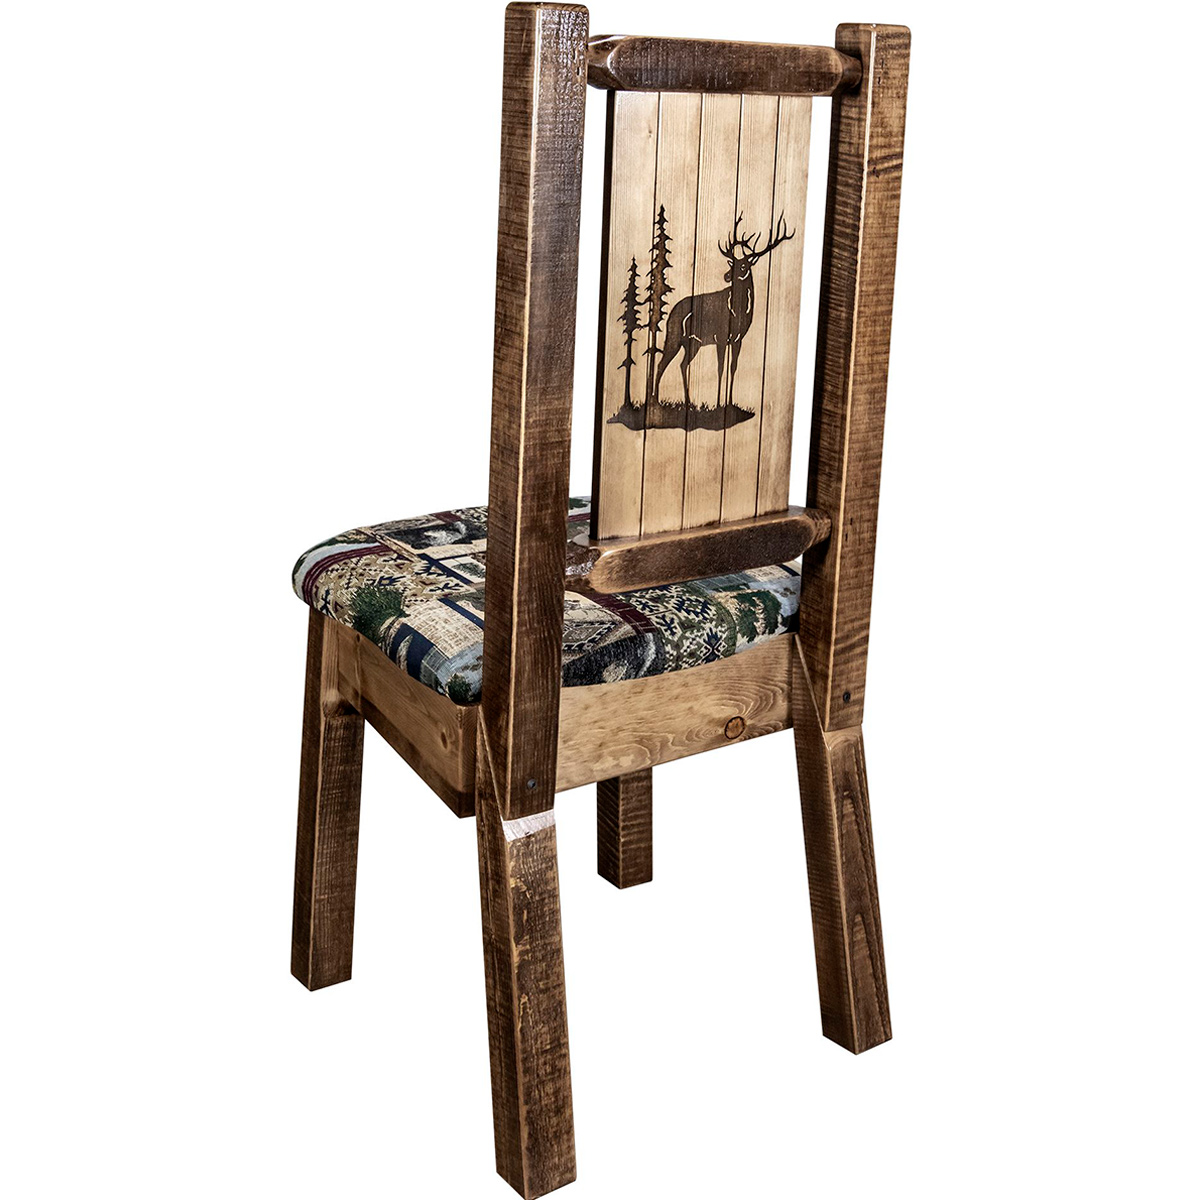 Ranchman's Woodland Upholstery Side Chair with Laser-Engraved Elk Design